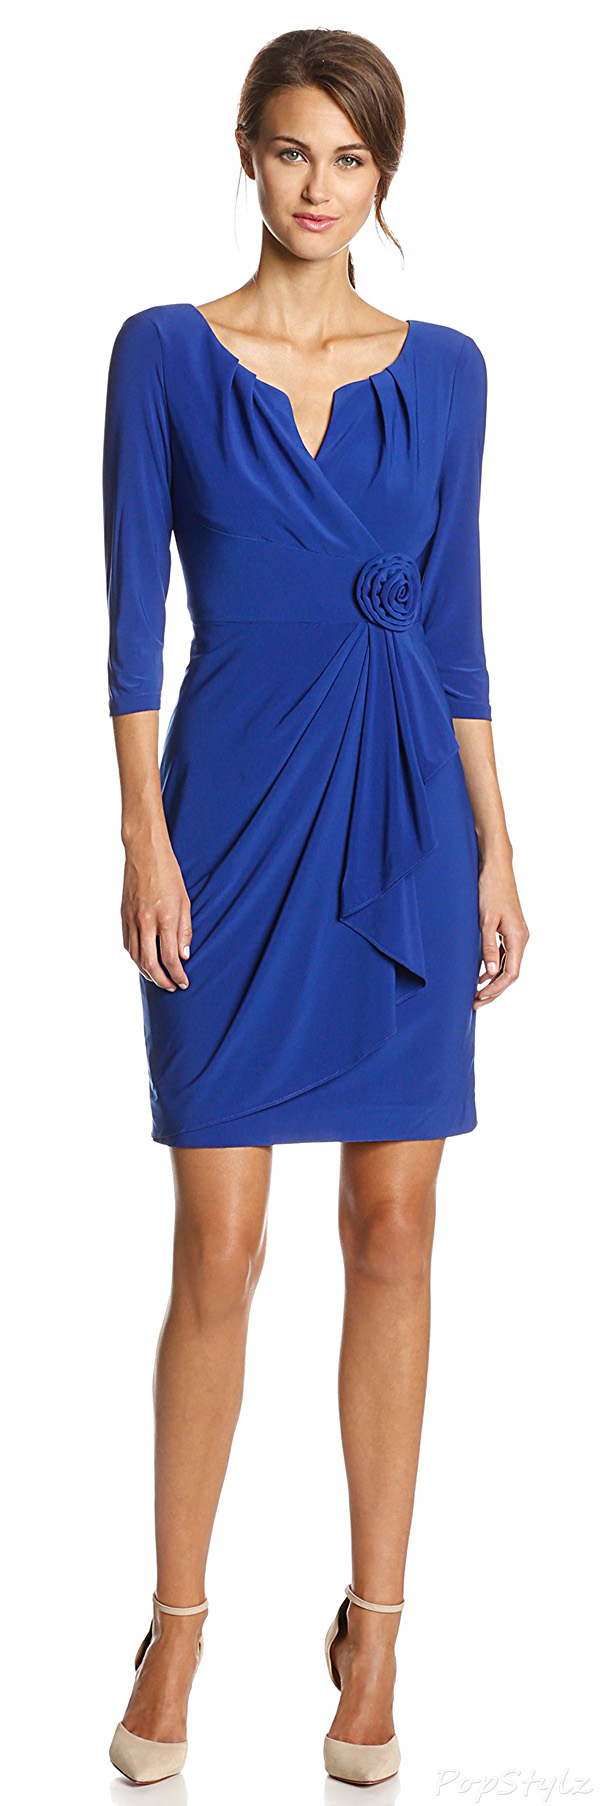 Adrianna Papell Sapphire Flower Side-Gather Dress